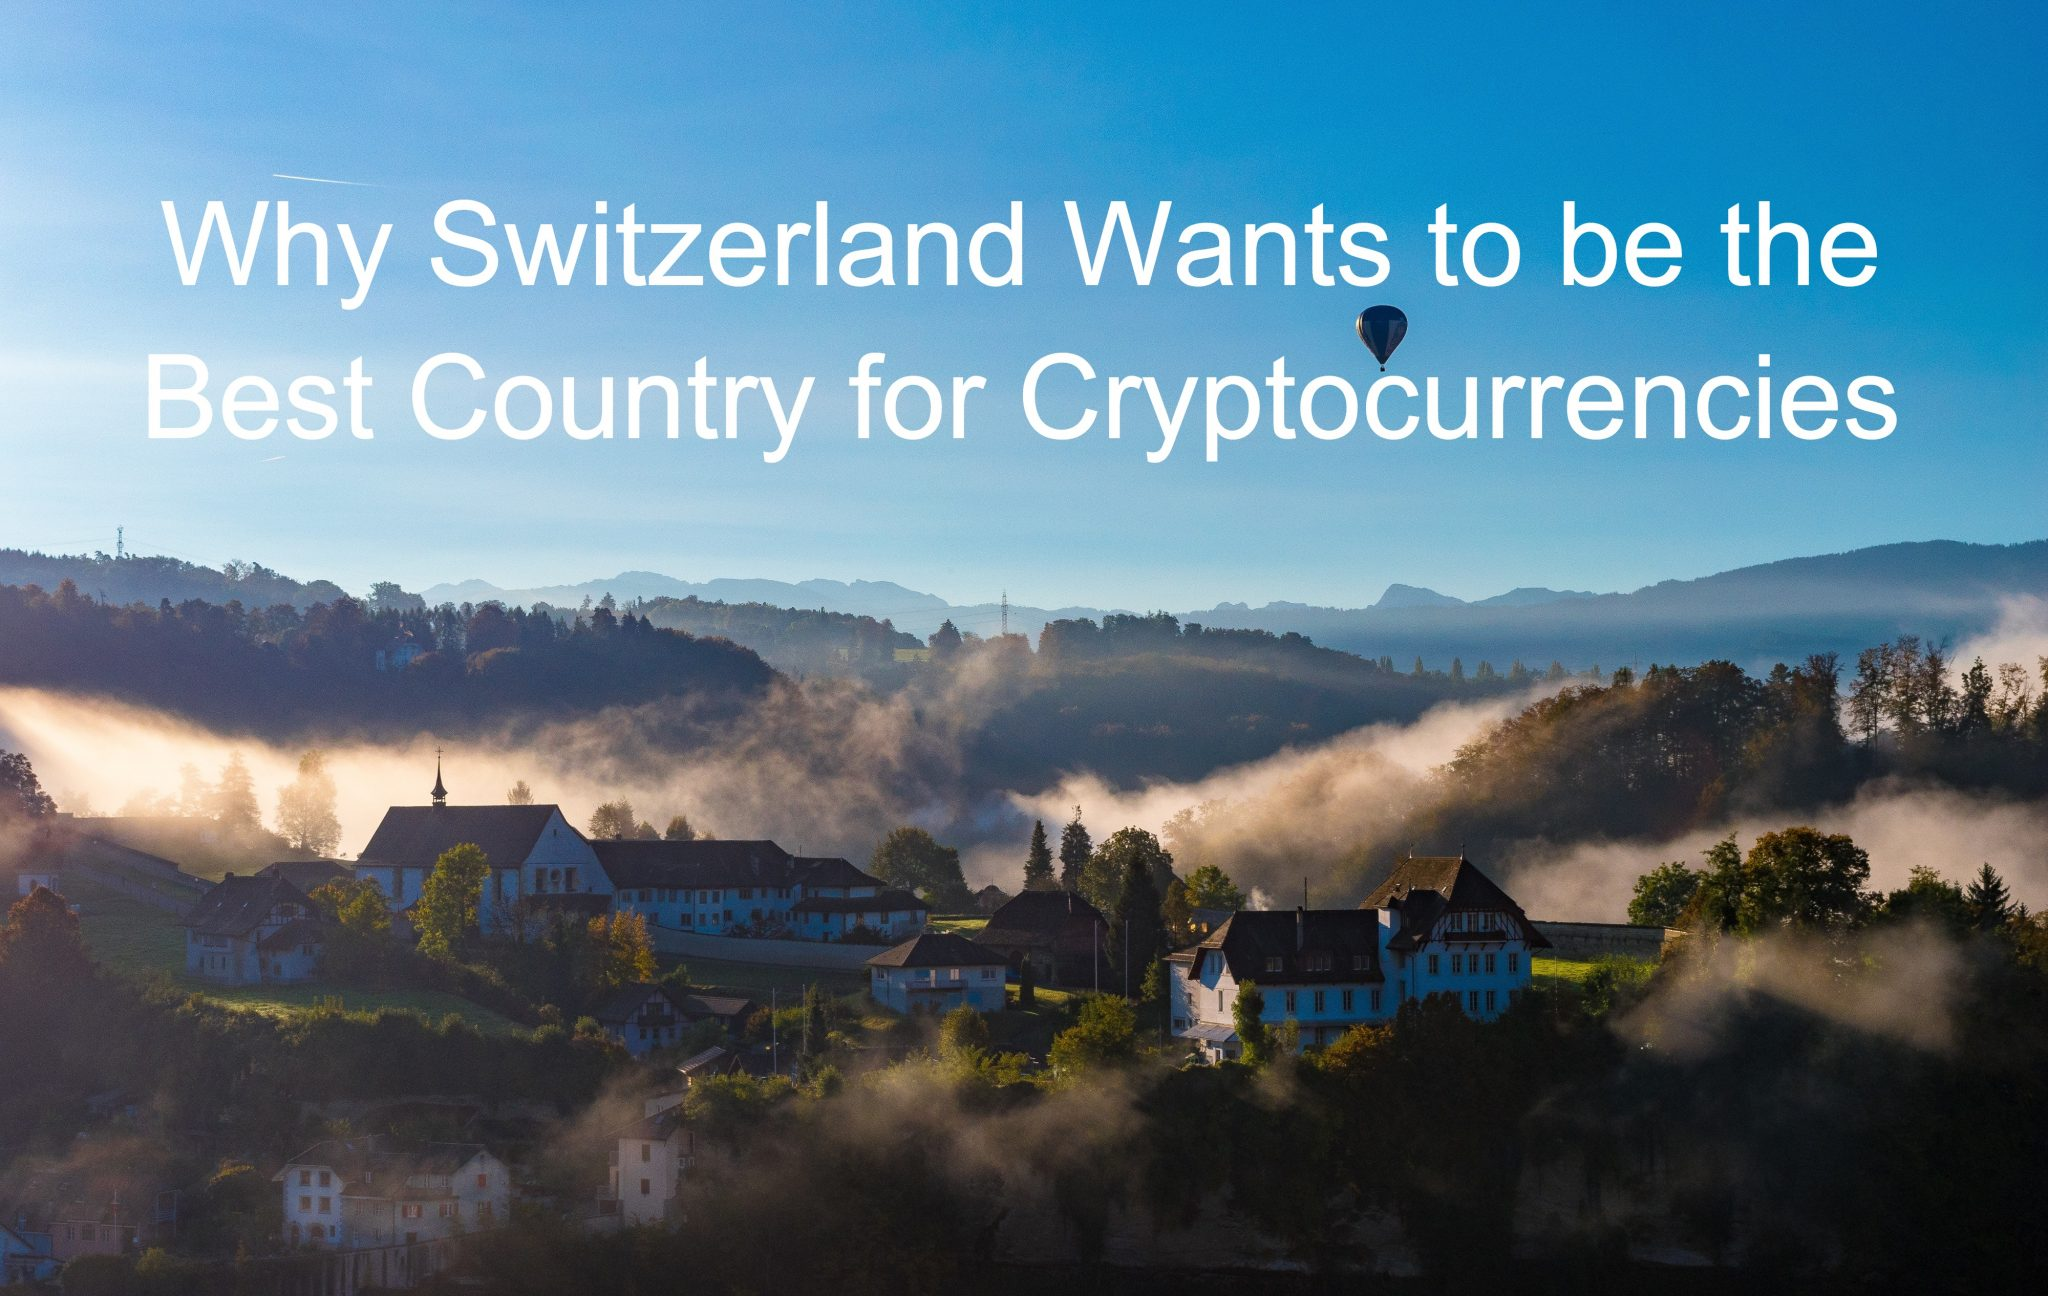 Why Switzerland Wants to be the Best Country for Cryptocurrencies